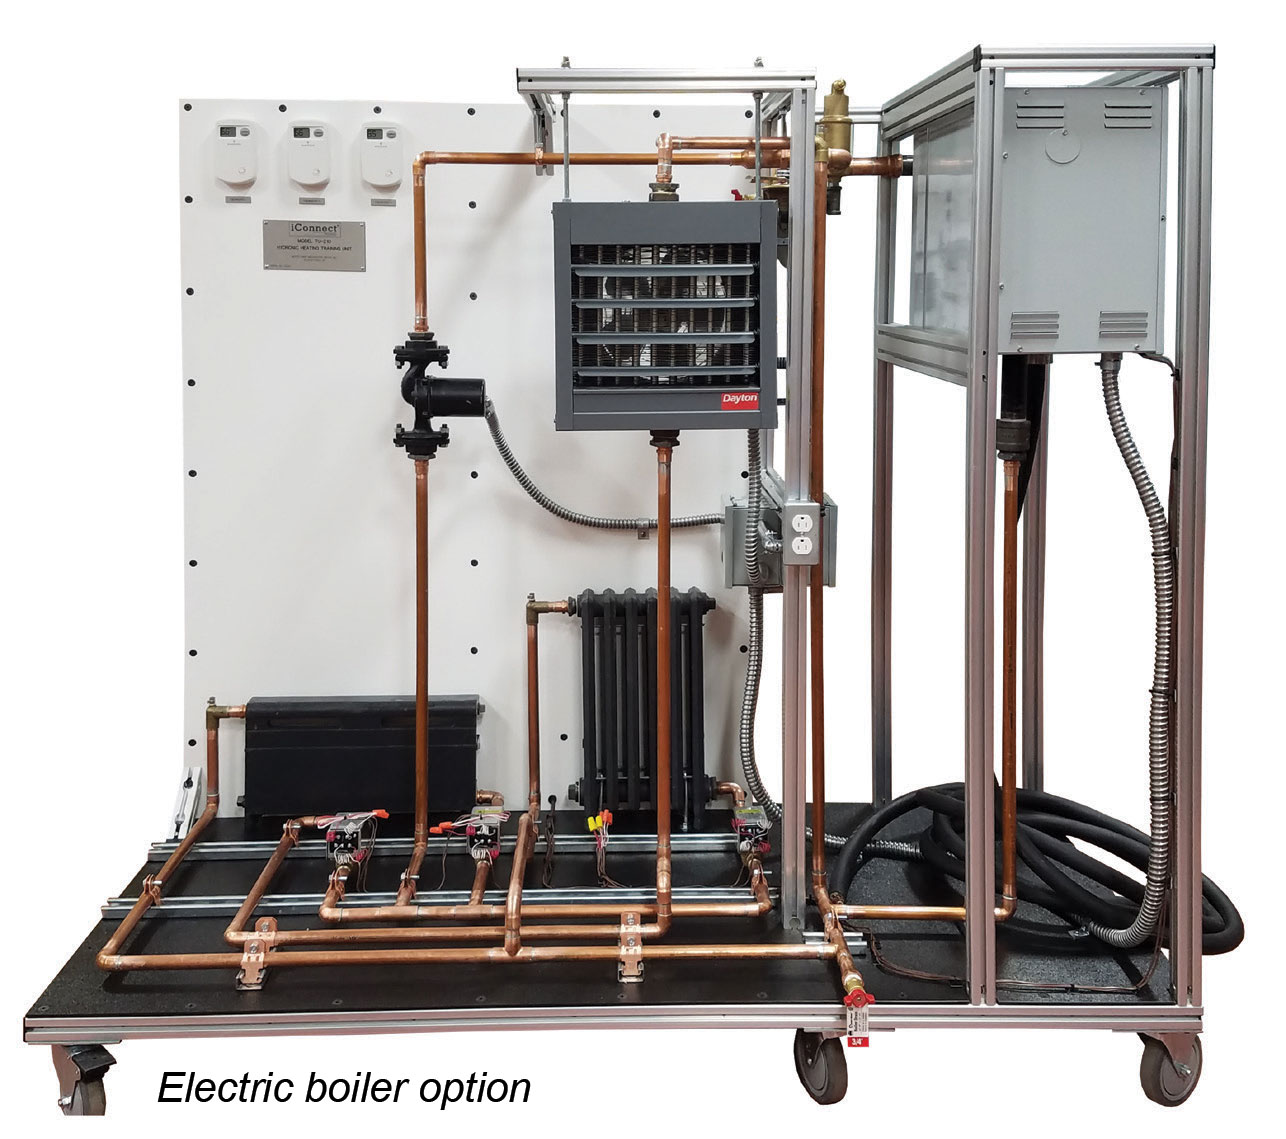 TU-210 Hydronic Heating Training Unit with electric boiler option